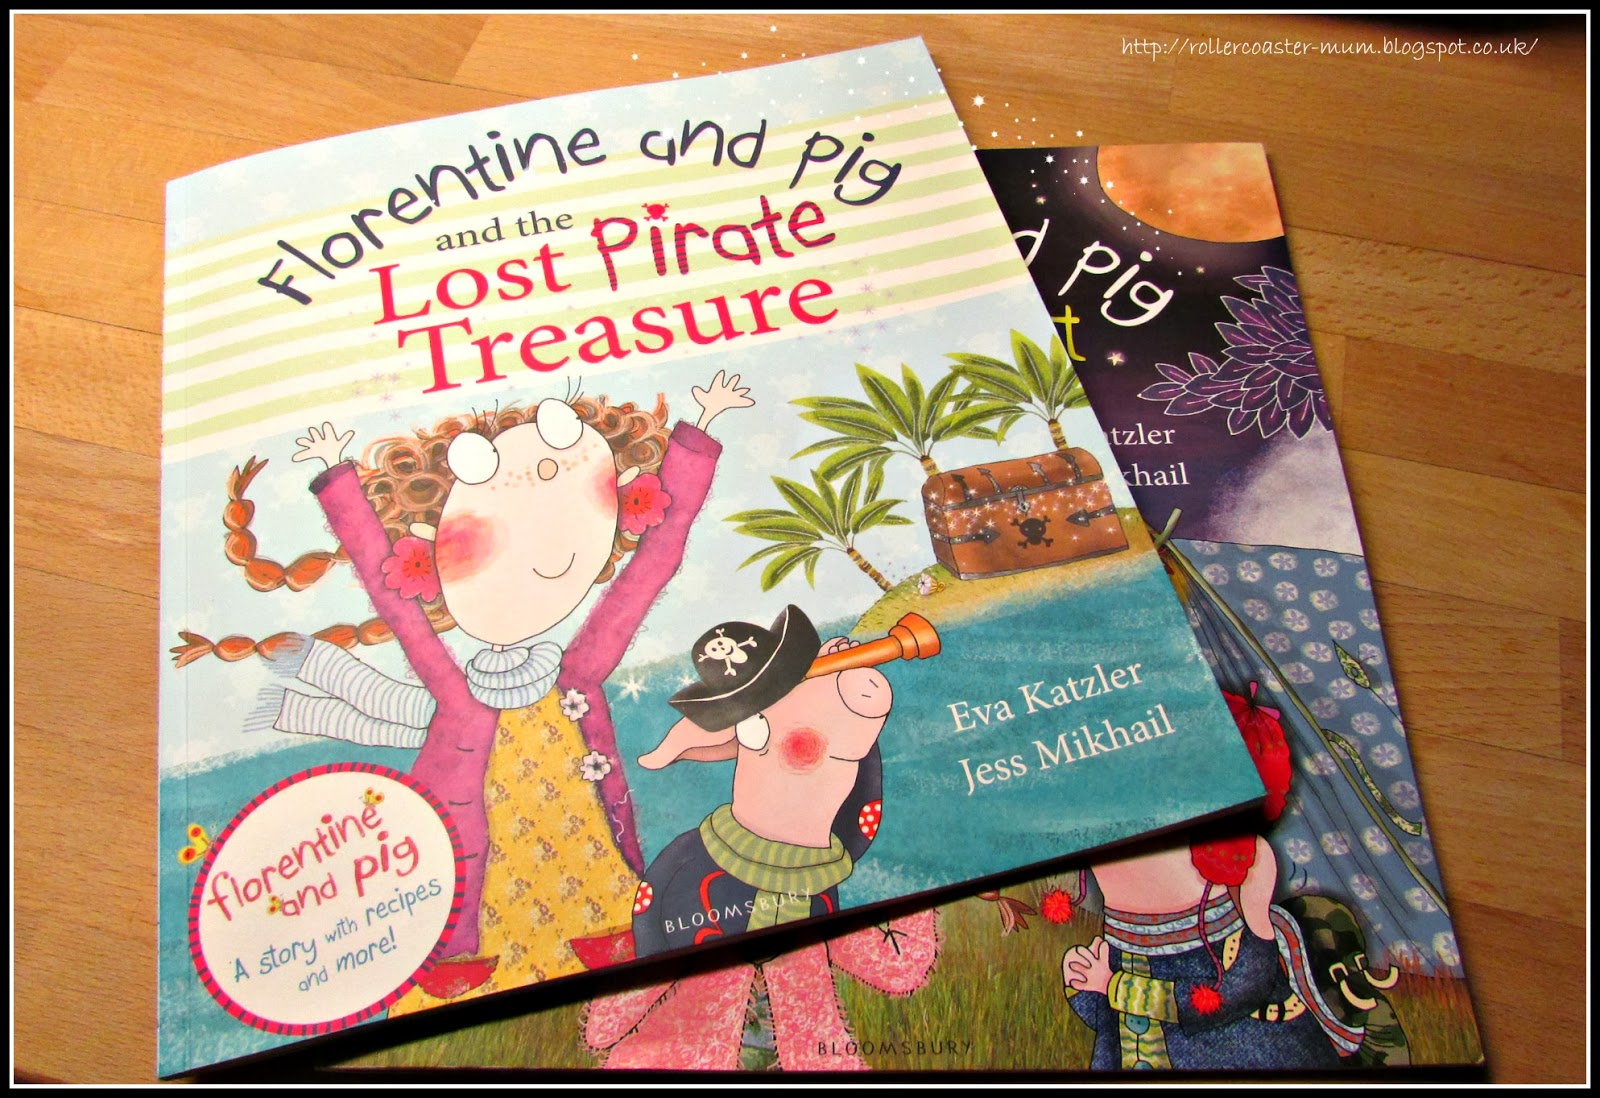 book review of Florentine and Pig and the Lost Pirate Treasure